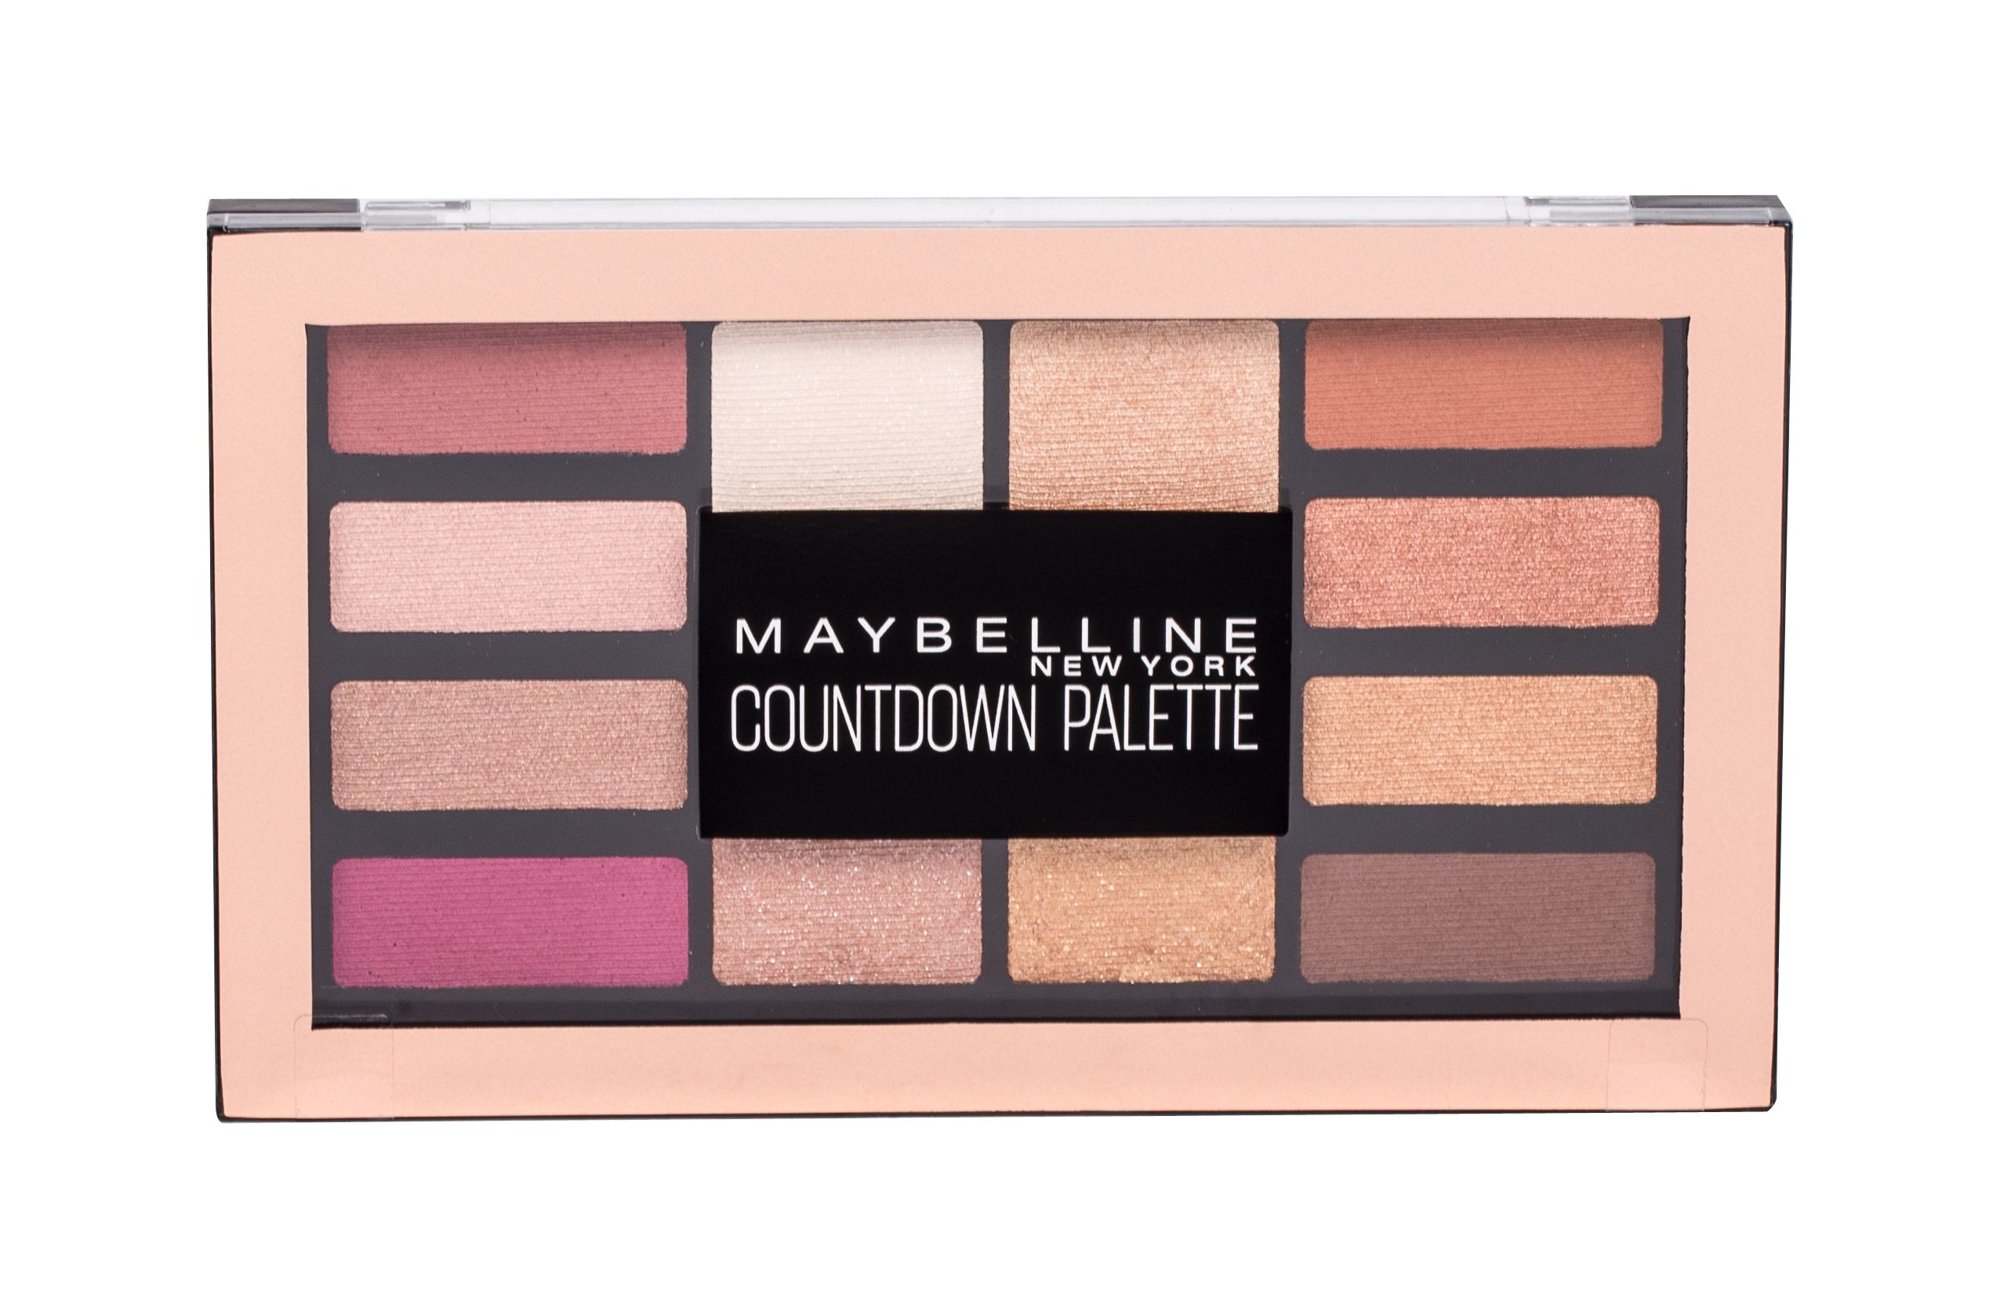 Maybelline Countdown Palette Eye Shadow 12ml 01